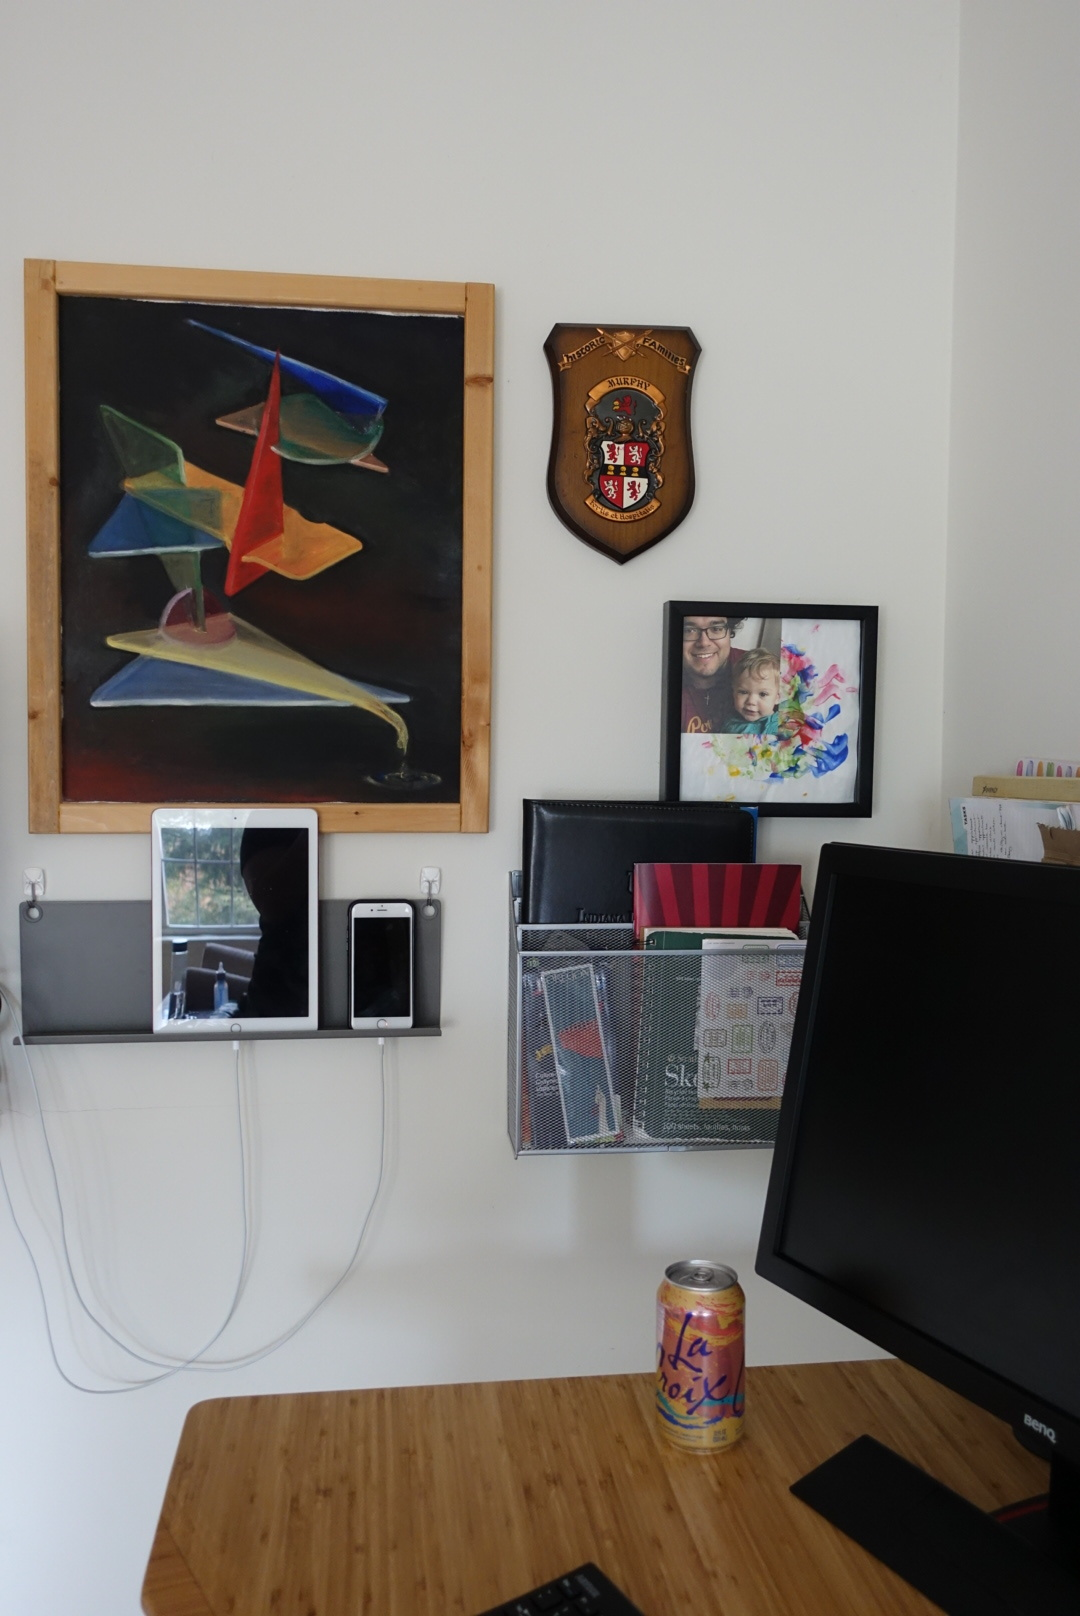 Our desk area includes A LOT of mounted storage, as well as a charging station on the wall.